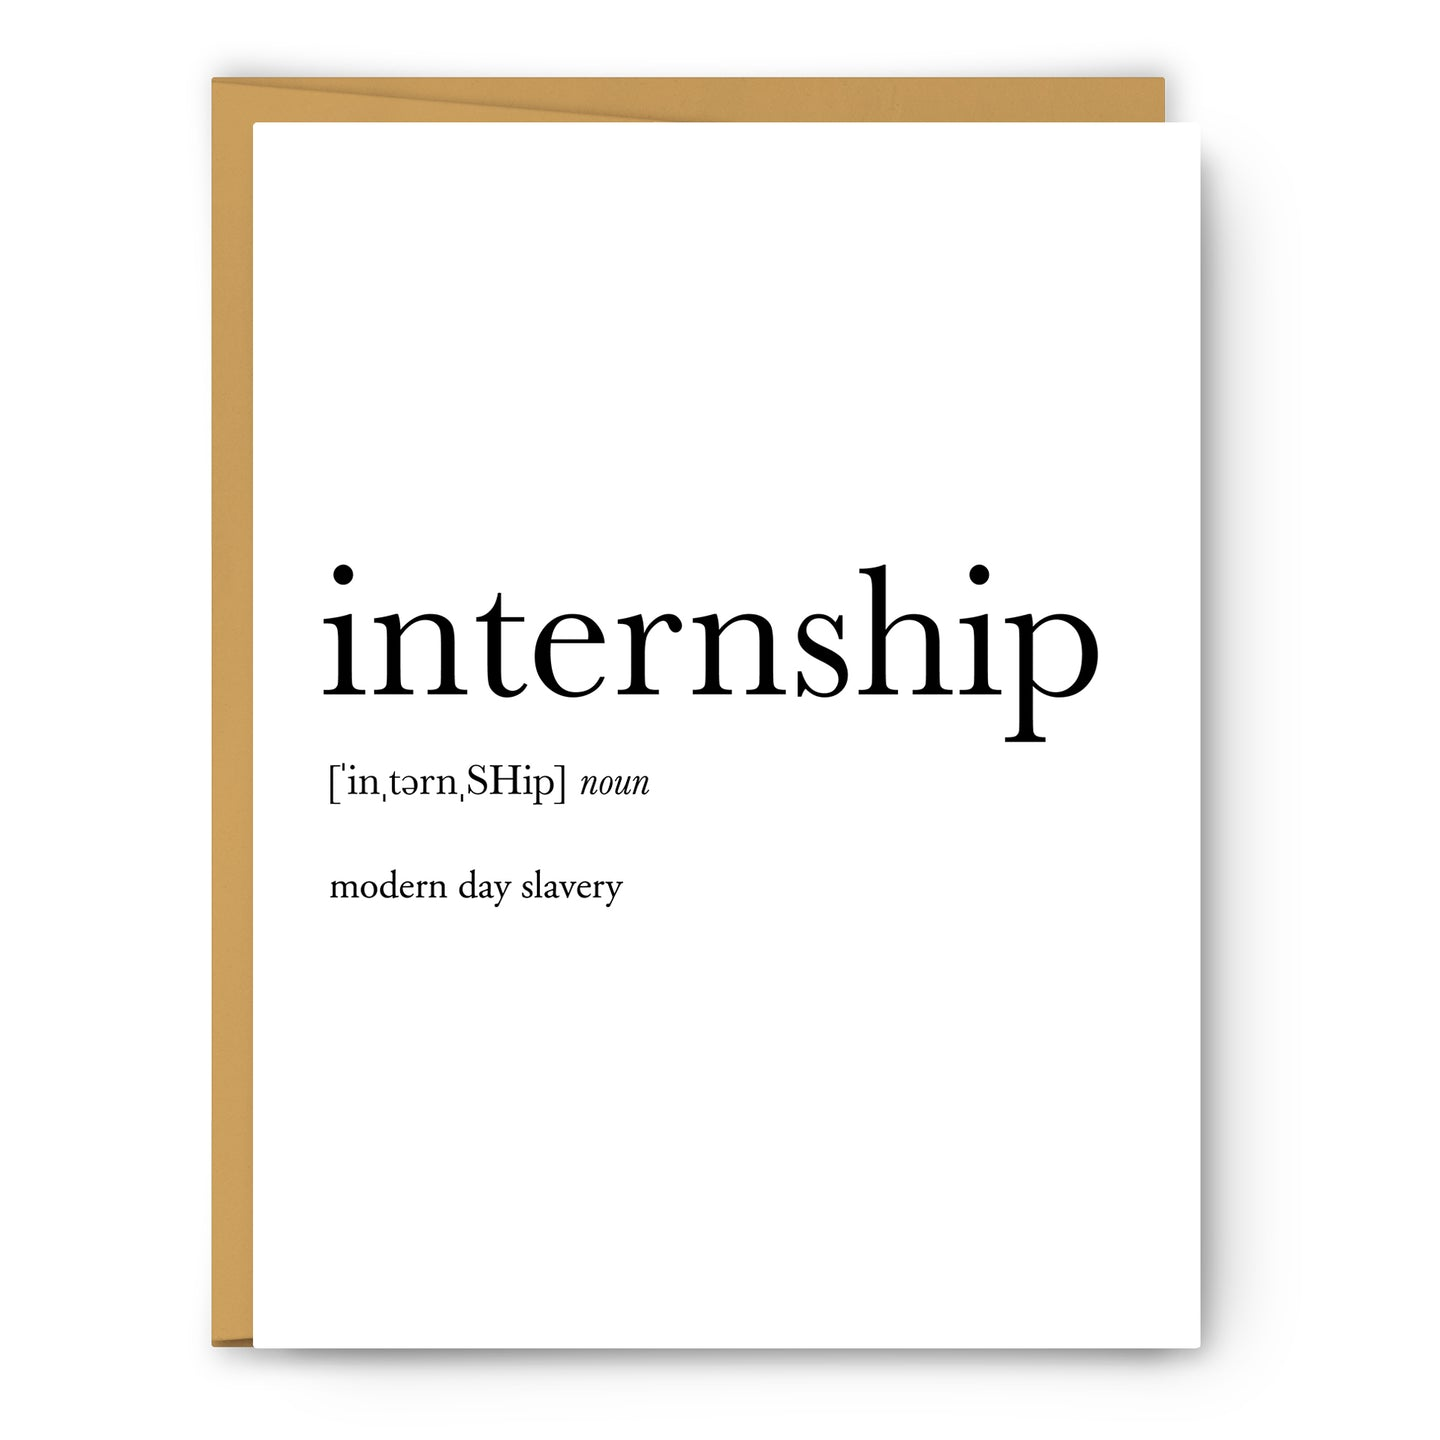 Internship Definition - Unframed Art Print Or Greeting Card